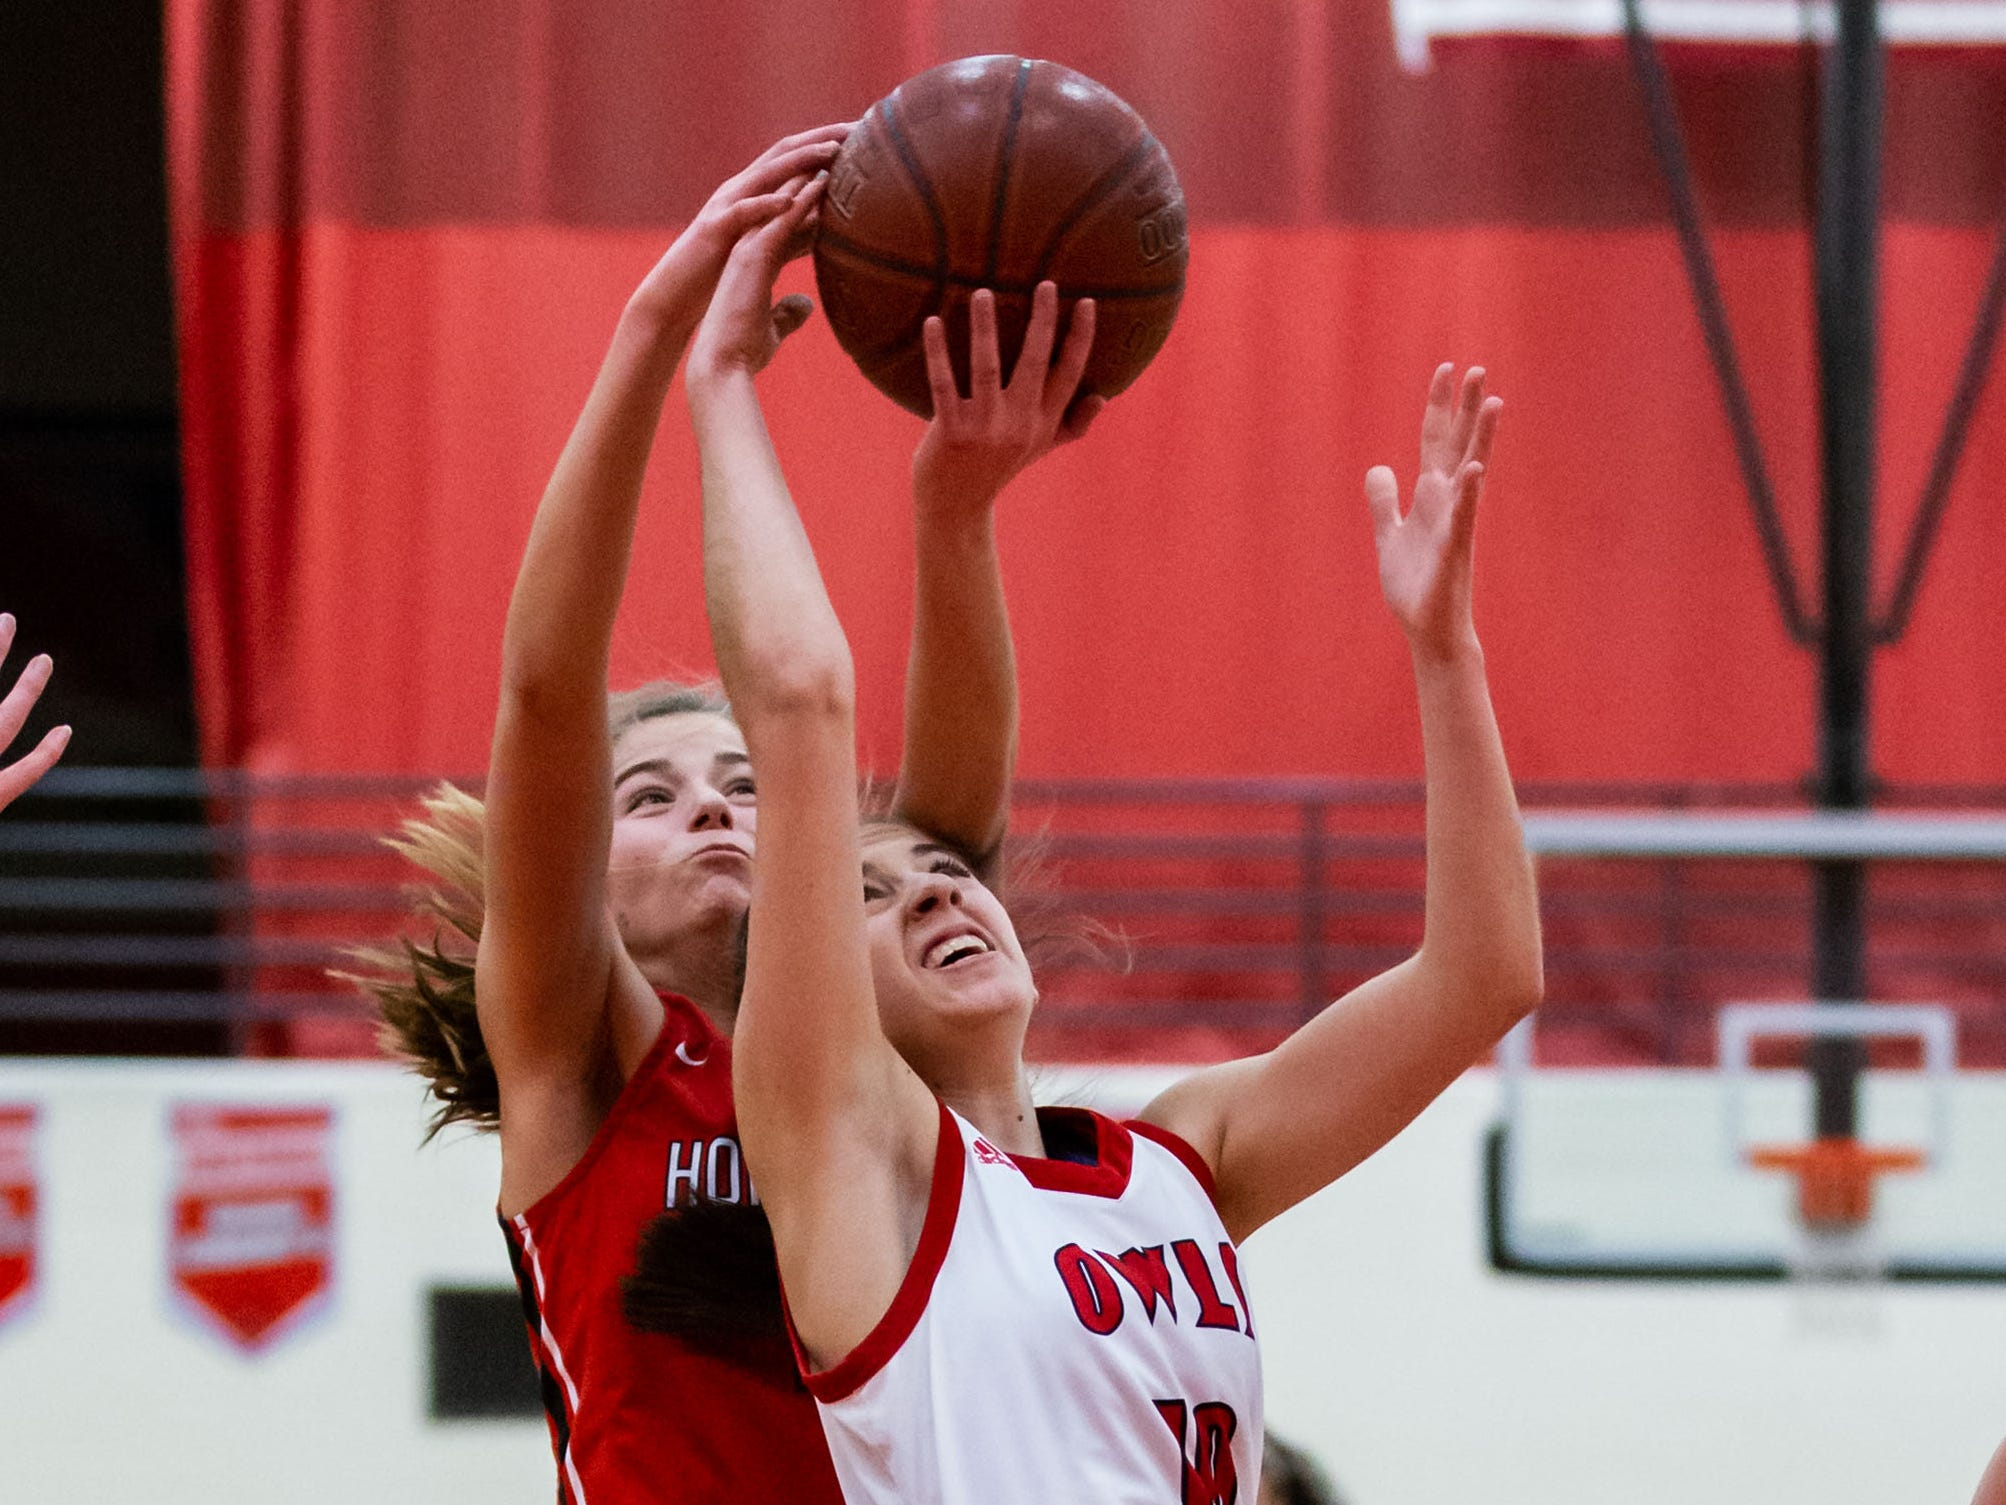 Homestead's Chloe Sileno (left) battles for a rebound with Slinger's Maddie Rothenhoefer during the game at Slinger on Friday, Jan. 11, 2019.